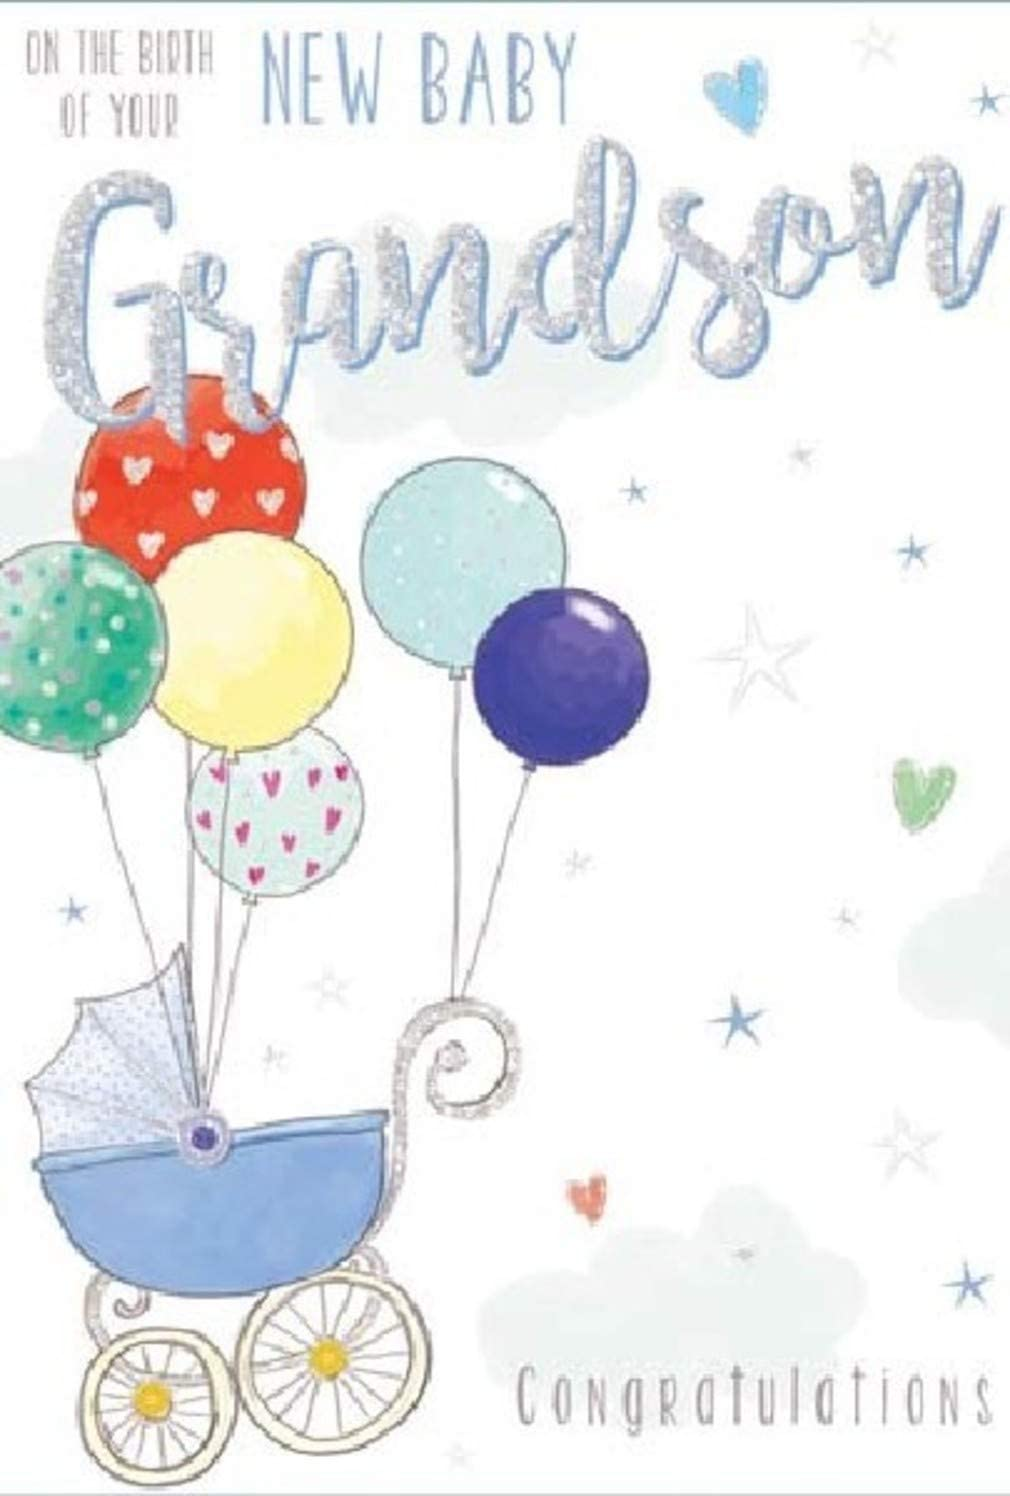 Newborn Grandson Greeting Card New Baby Congratulations 20 x 14 cm Quality  Card On The Birth of Your Grandson: Amazon.co.uk: Office Products